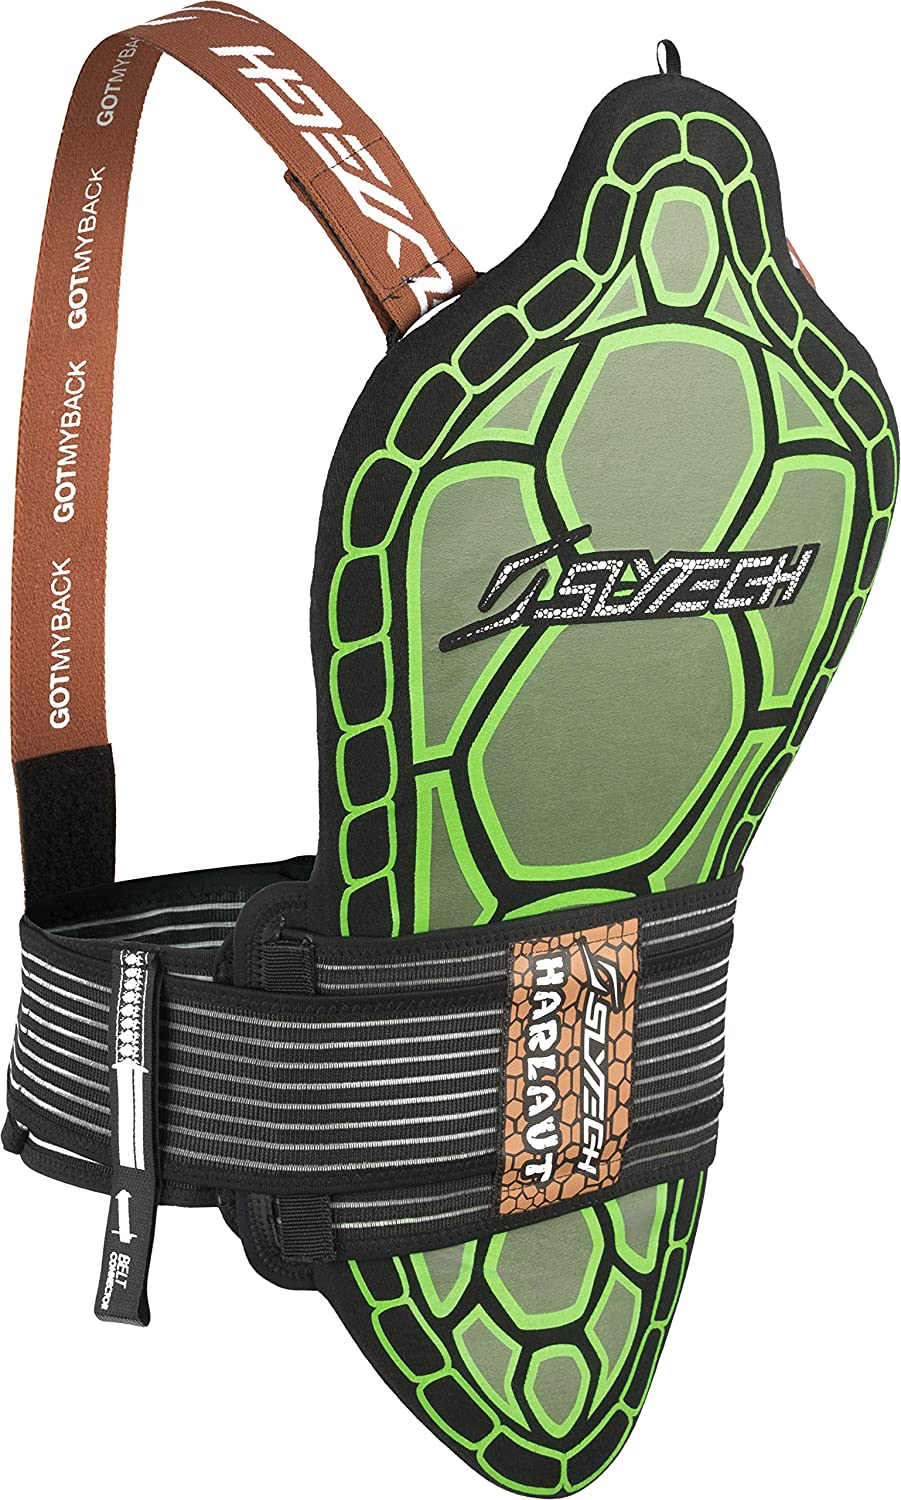 Slytech Backpro One Lite E-Dollo HH Back Protector, Green, X-Large AAS - Anomaly Action Sports YNEBPLG